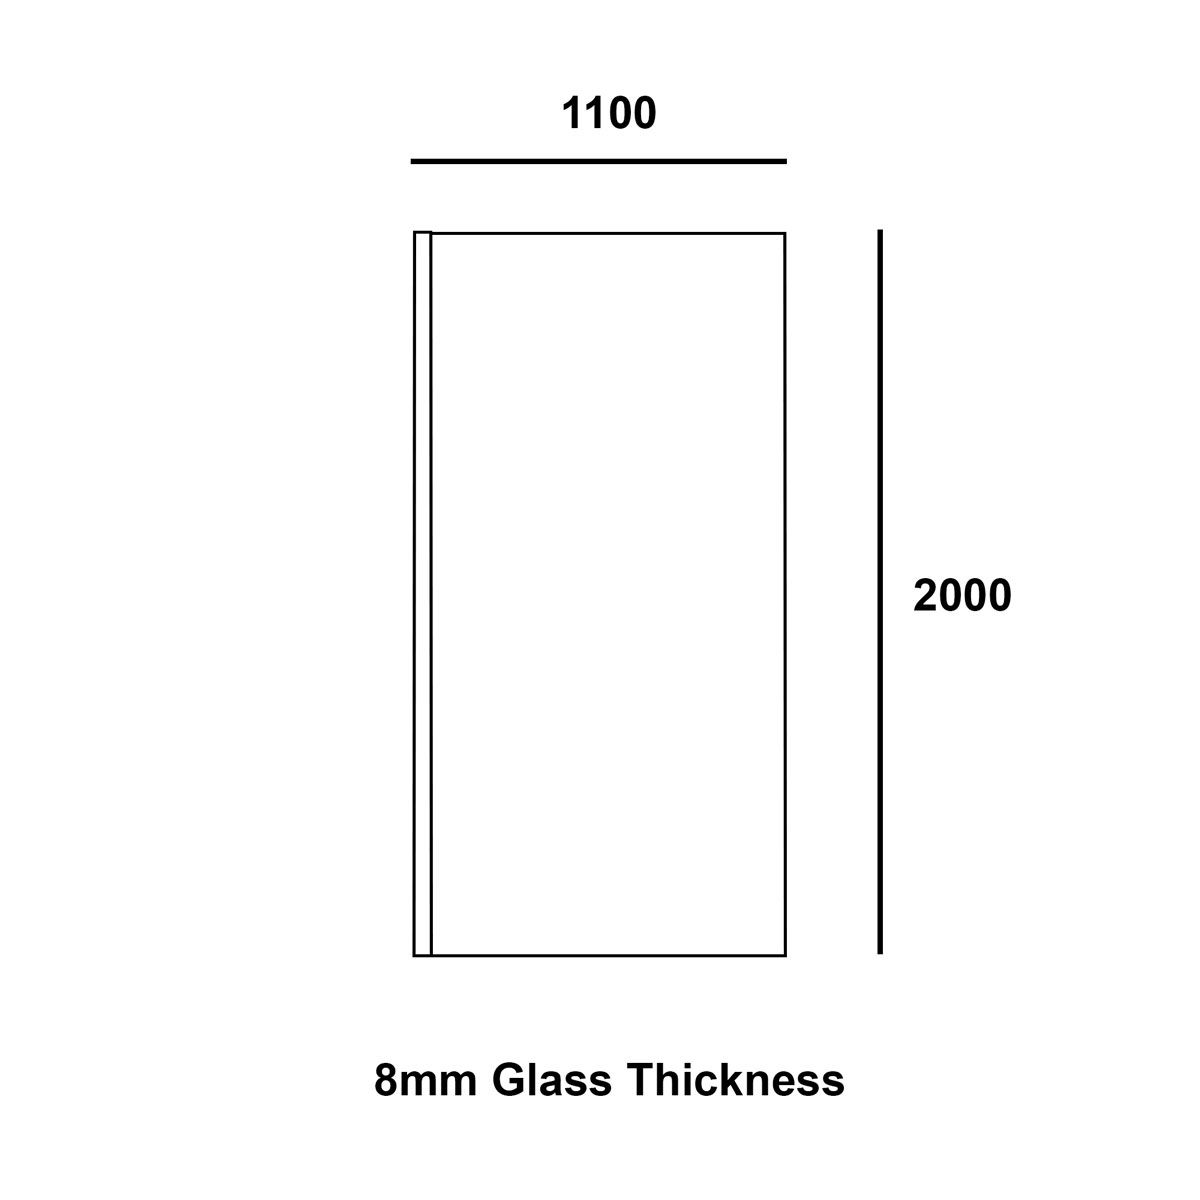 Coral 8mm Wet Room Glass Shower Panel 1100mm Dimensions